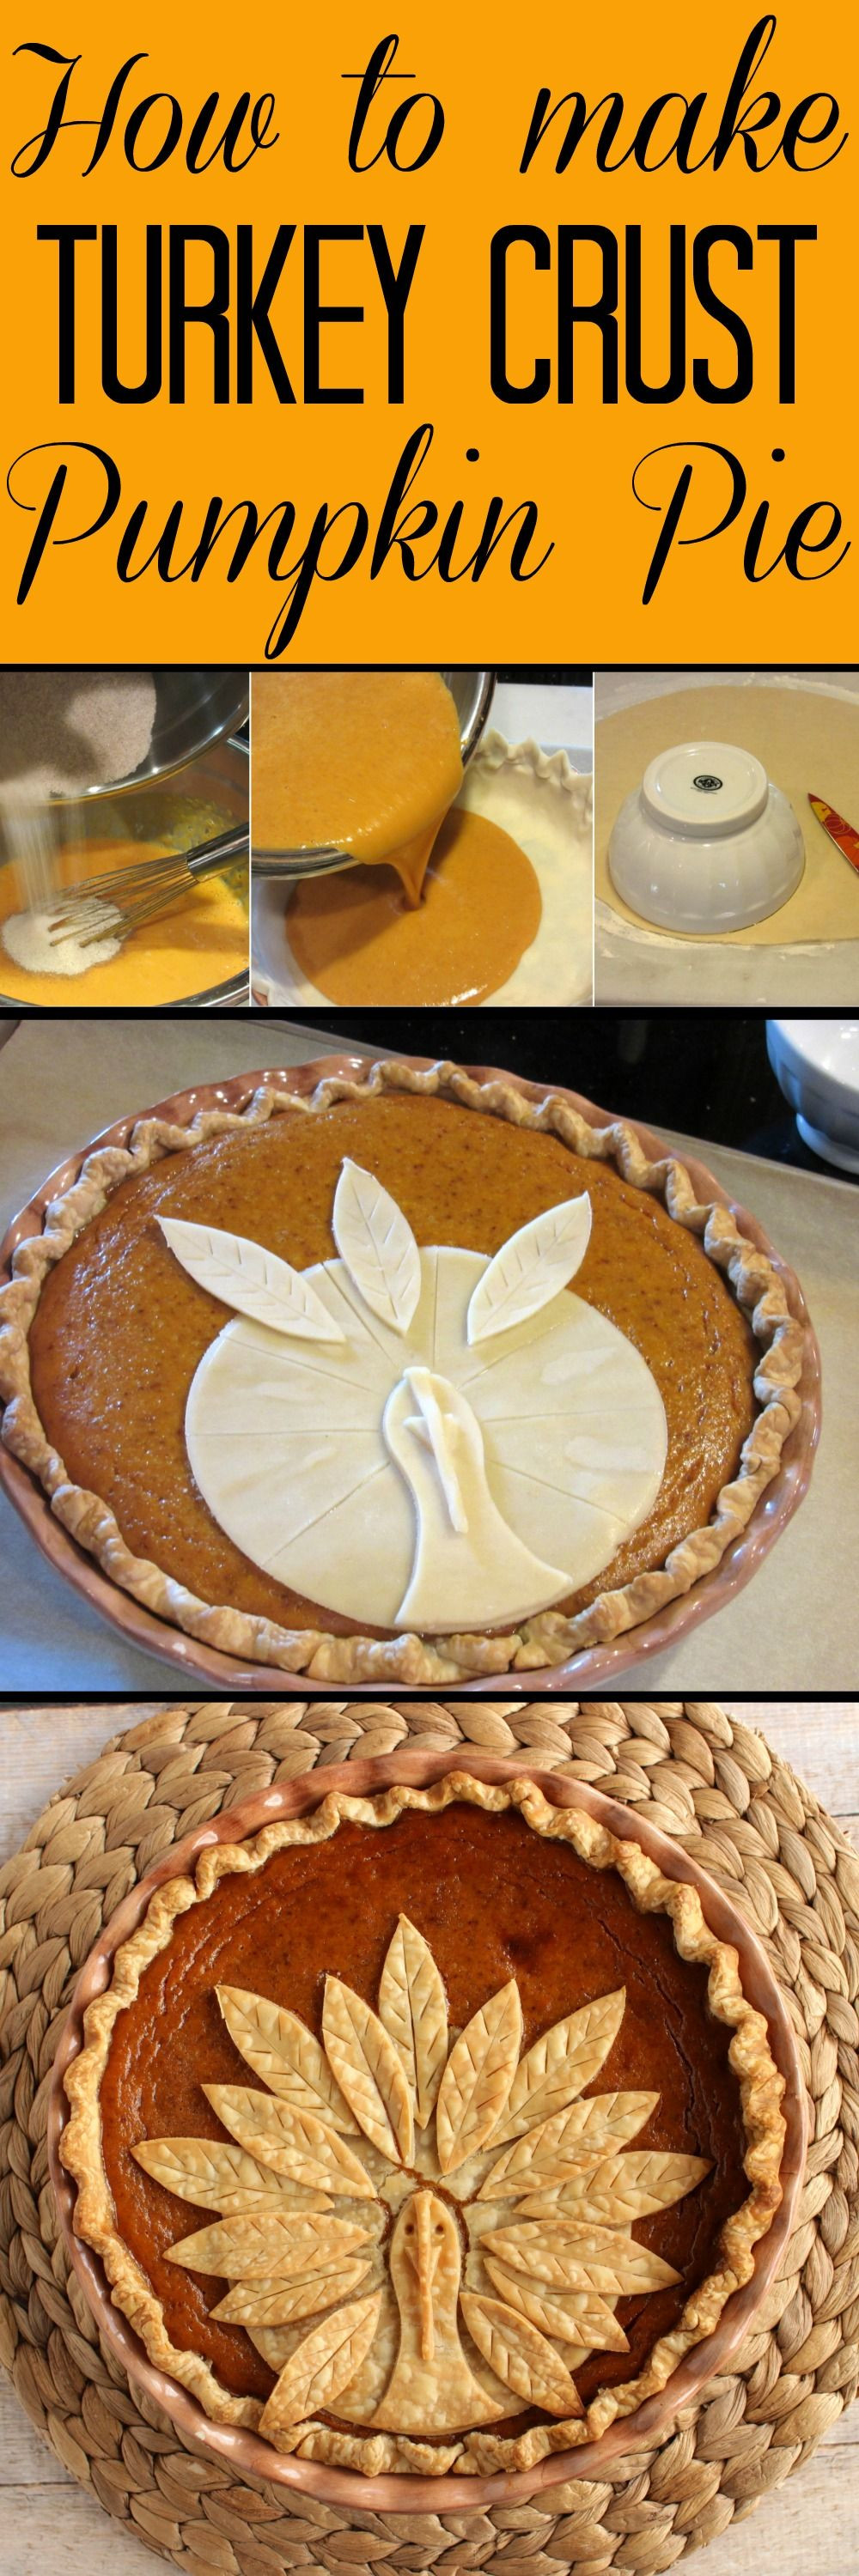 Pumpkin Pie Thanksgiving  Adorable Turkey Crust Pumpkin Pie Recipe